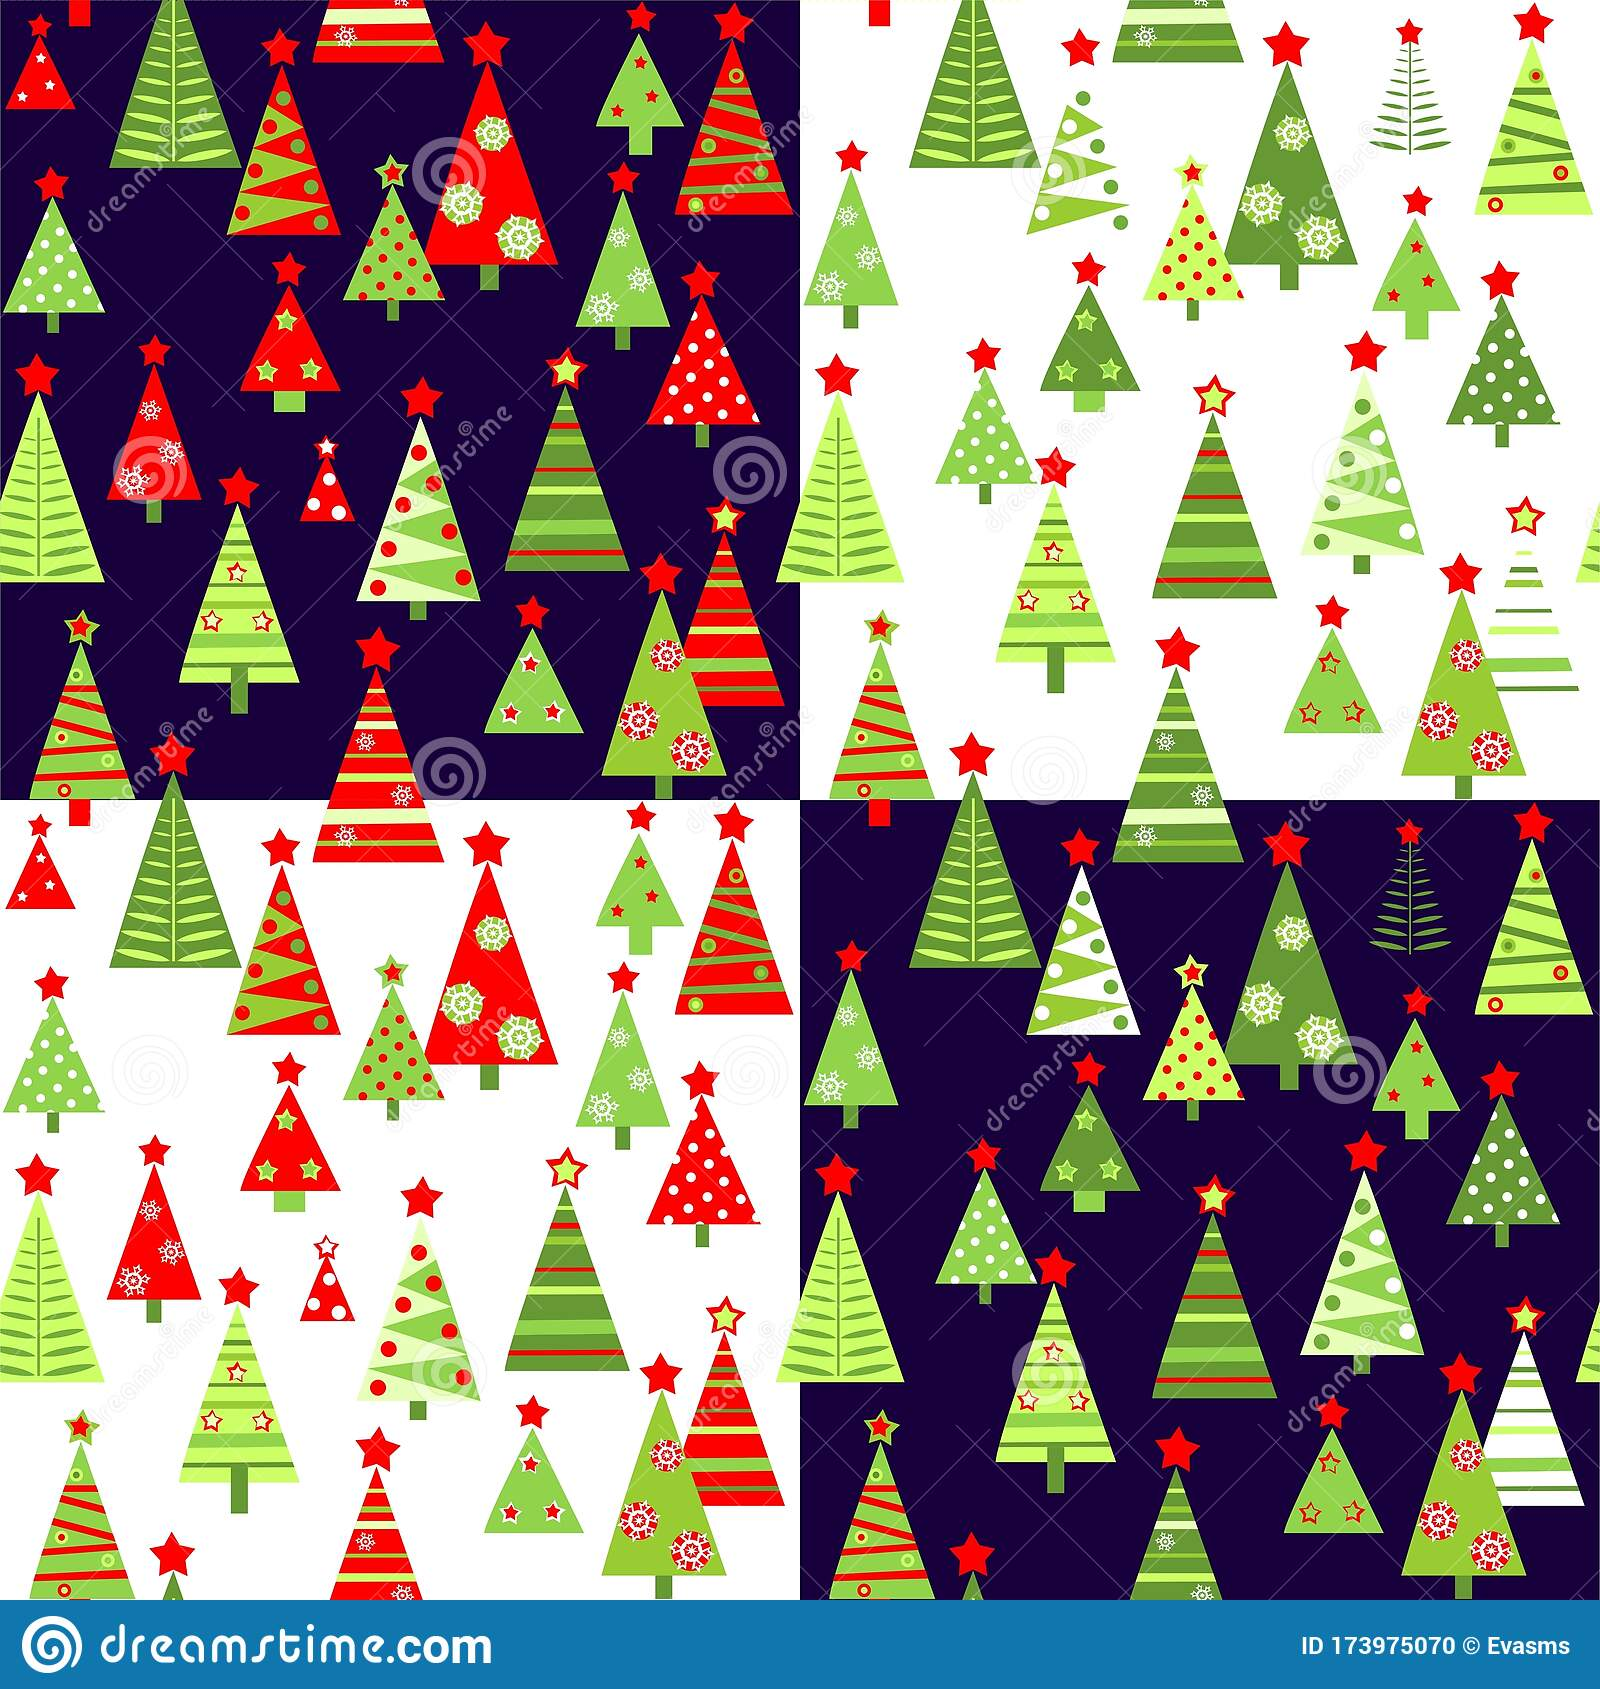 christmas wallpaper variation paper cutting funny red green xmas trees stars snowflakes wallpapers 173975070